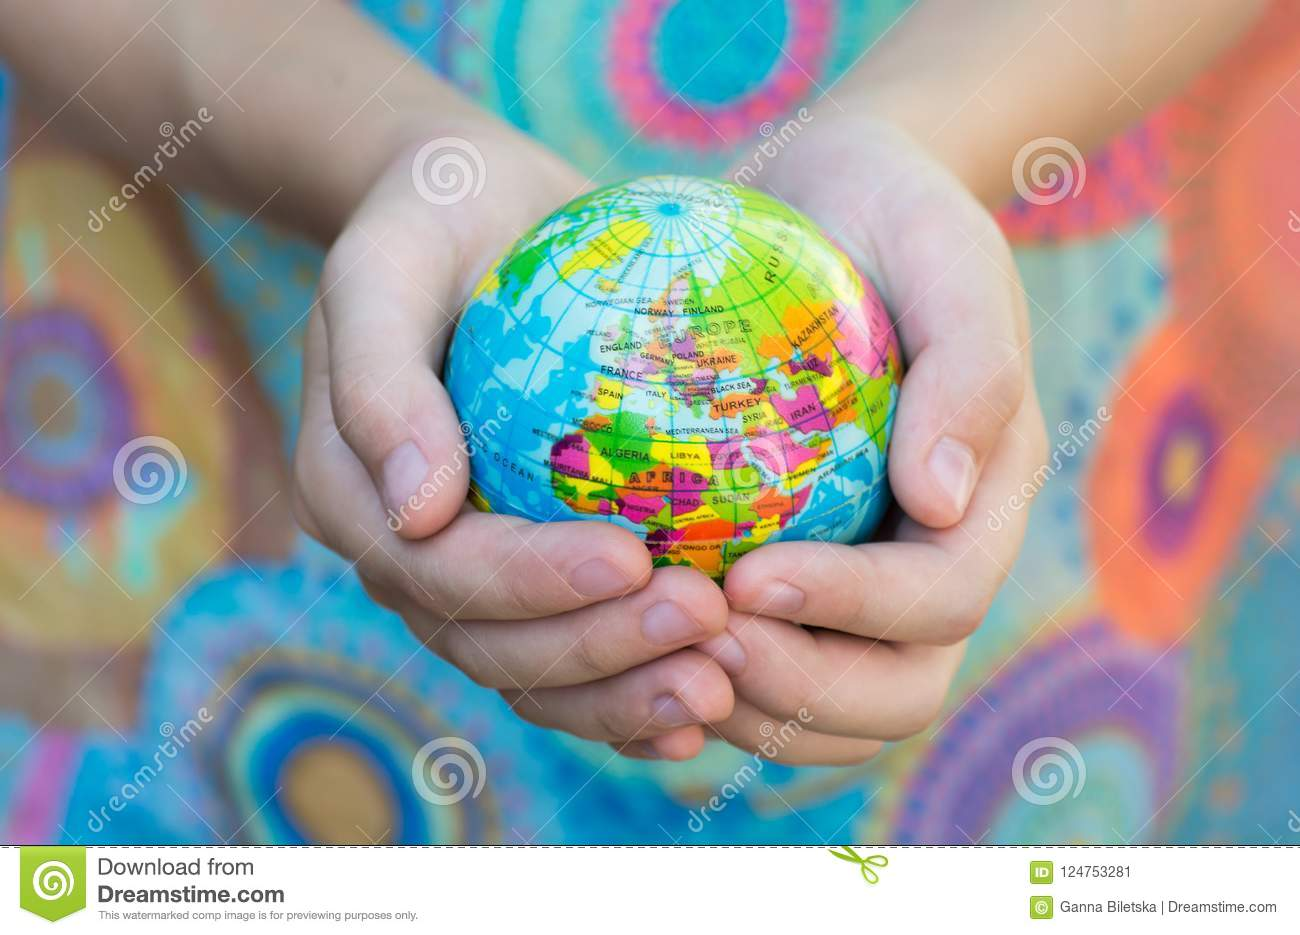 The Blue Globe with the territories of the countries of the World on a colorful background,